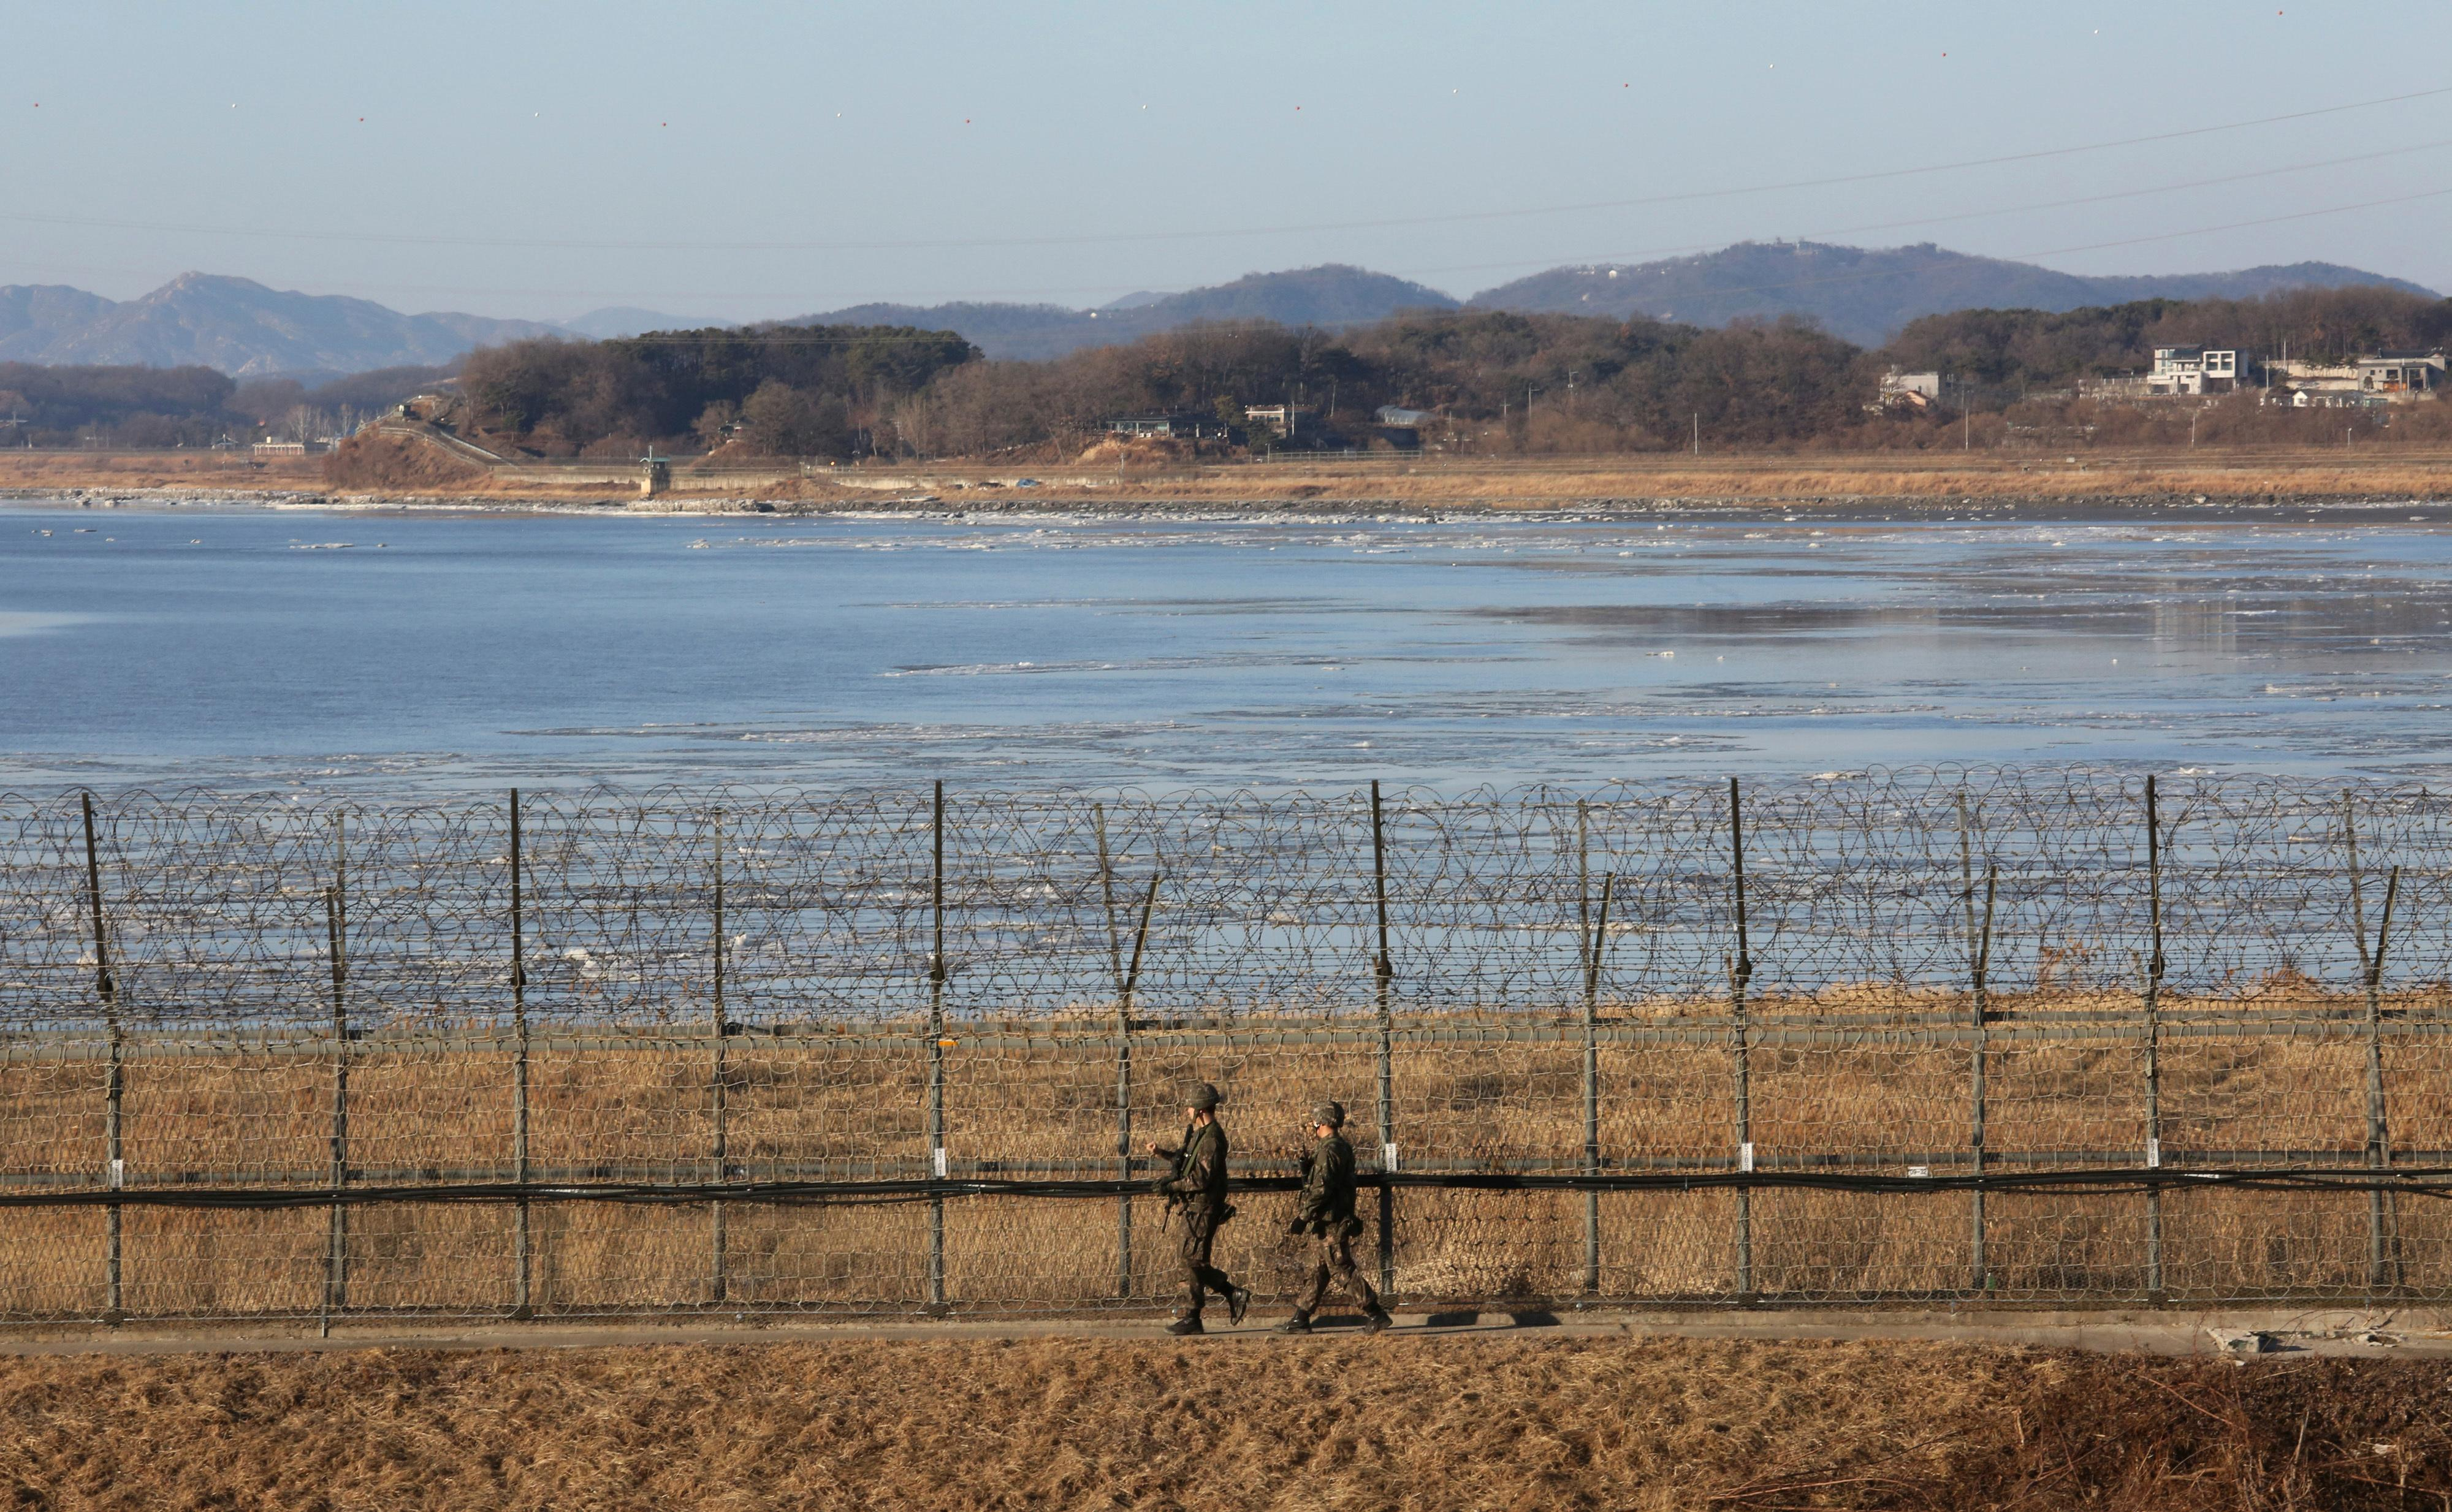 an overview of the dream of uniting south and north korea Clinton decided against military action because of fears north korea's huge ground force would wreak havoc across the south korean border a major war would be needed to defeat it.